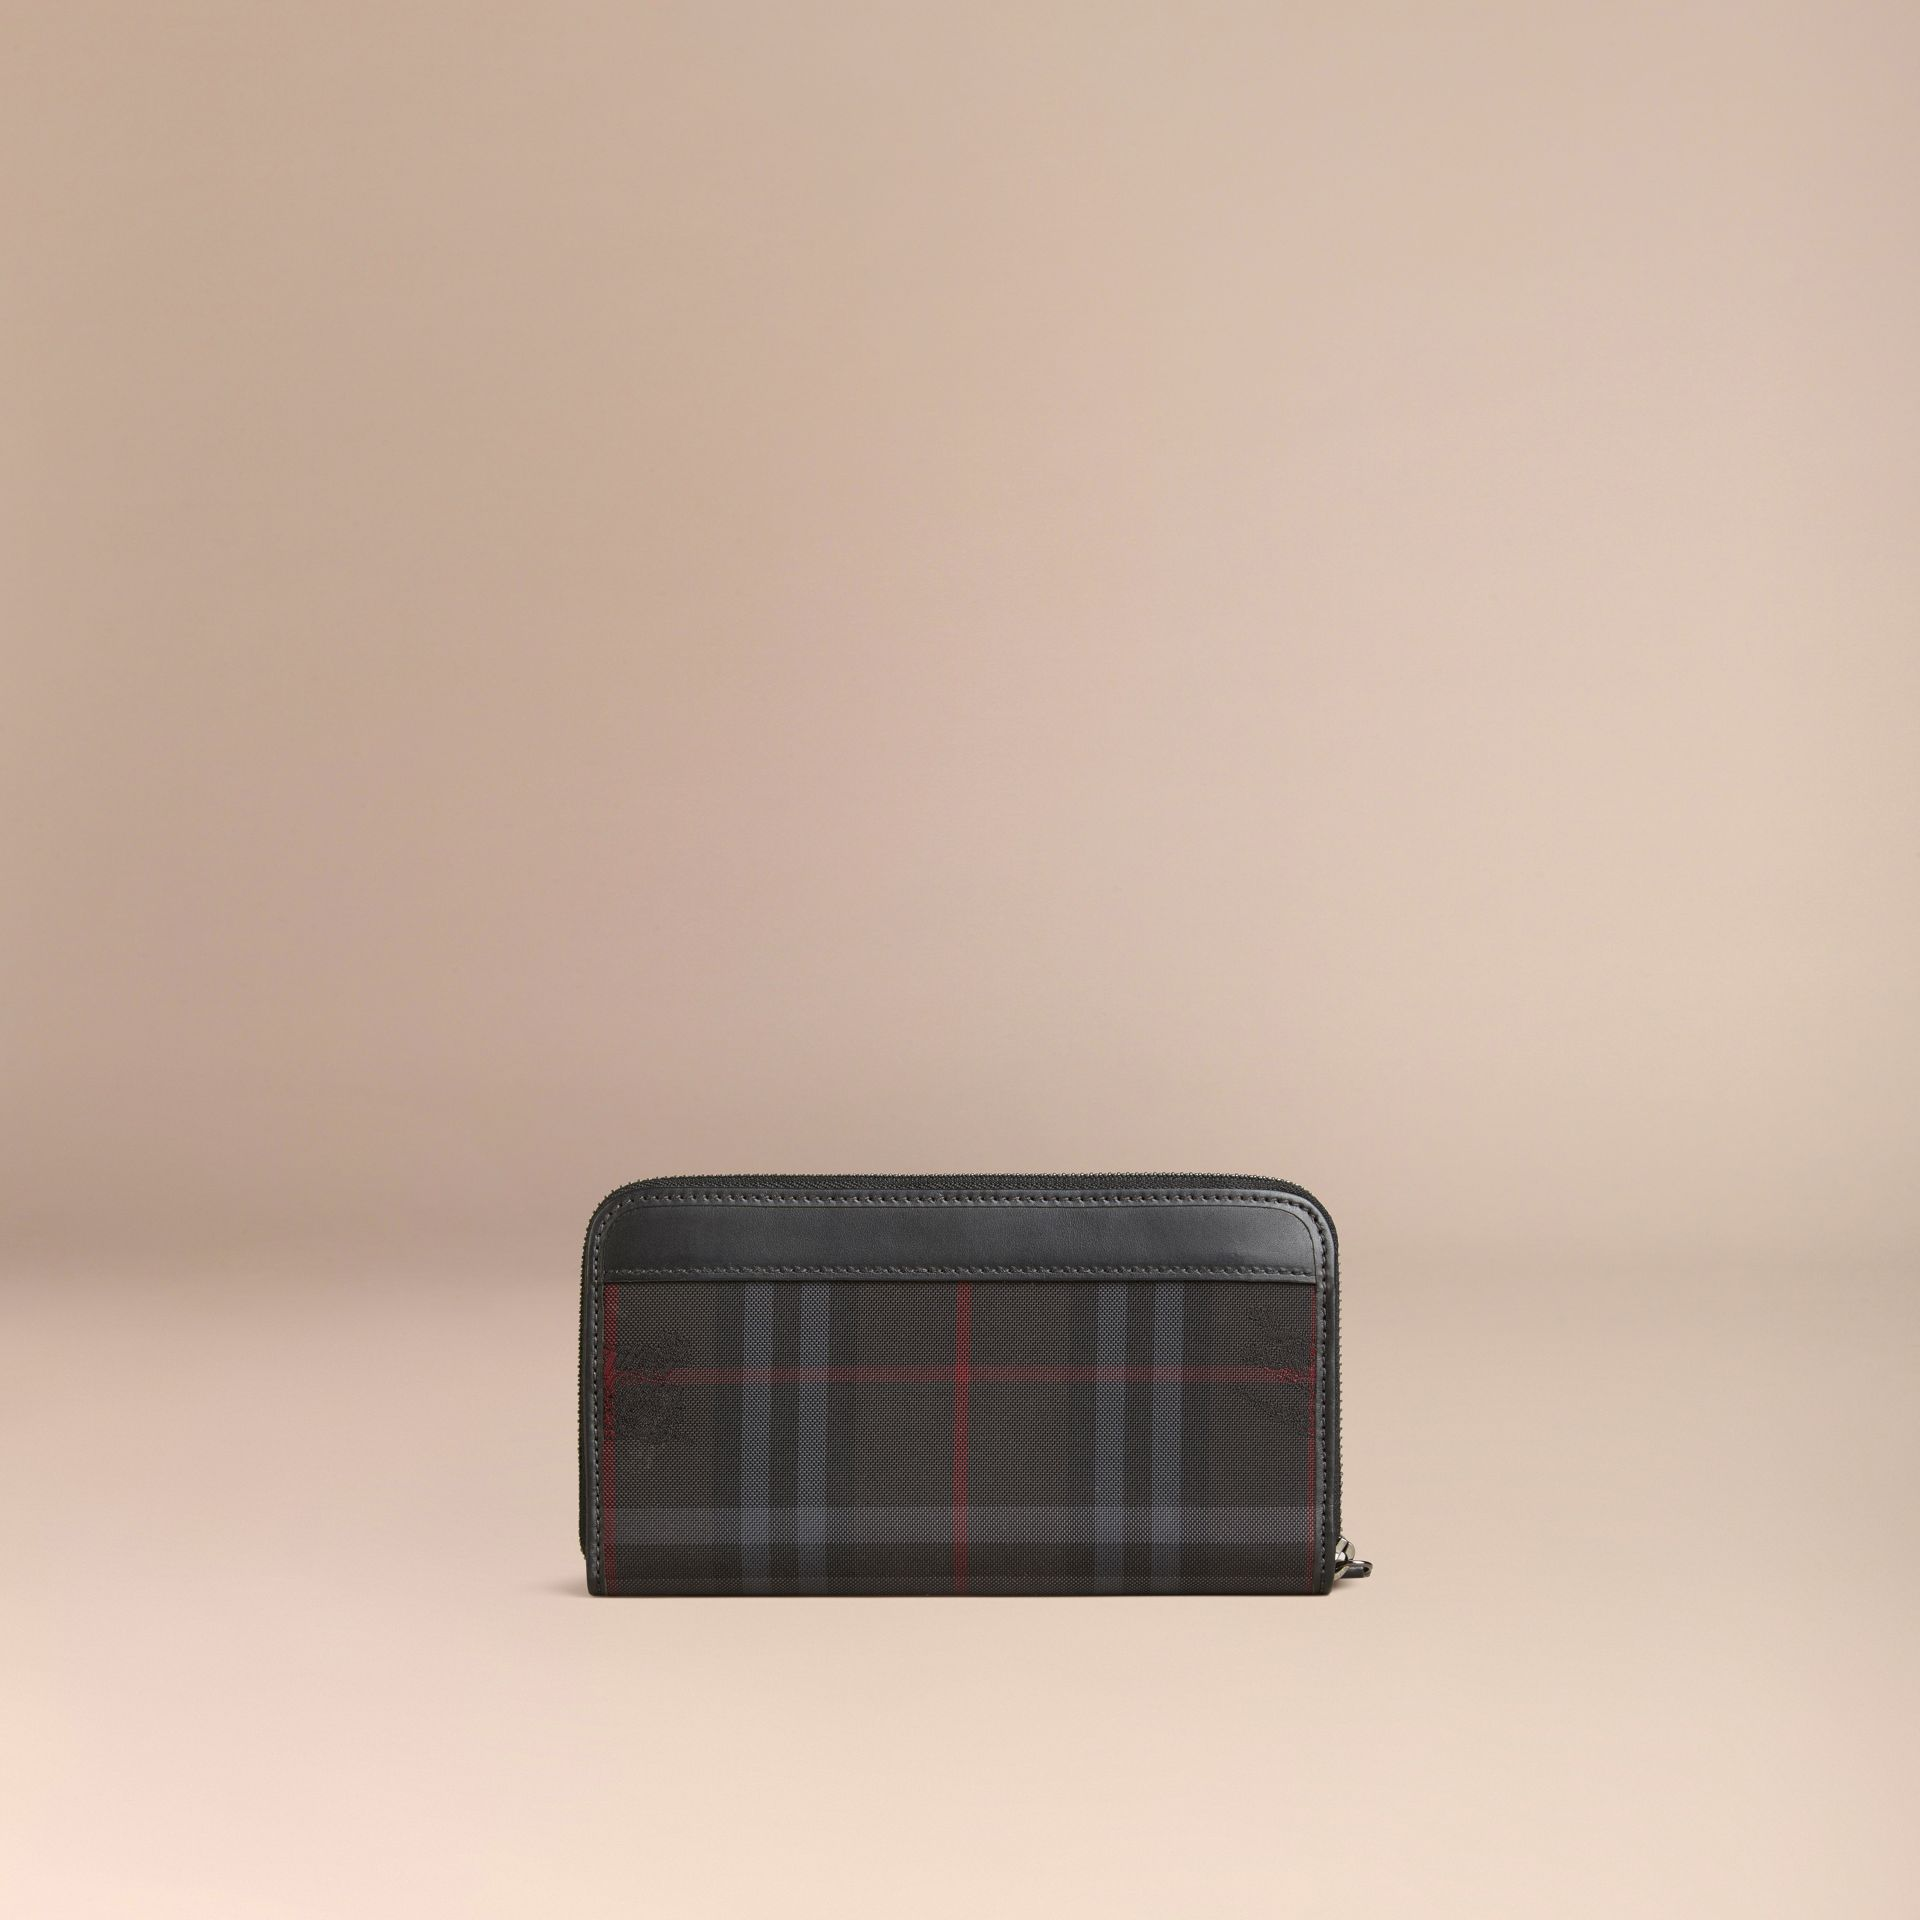 Charcoal/black Horseferry Check Ziparound Wallet Charcoal/black - gallery image 3